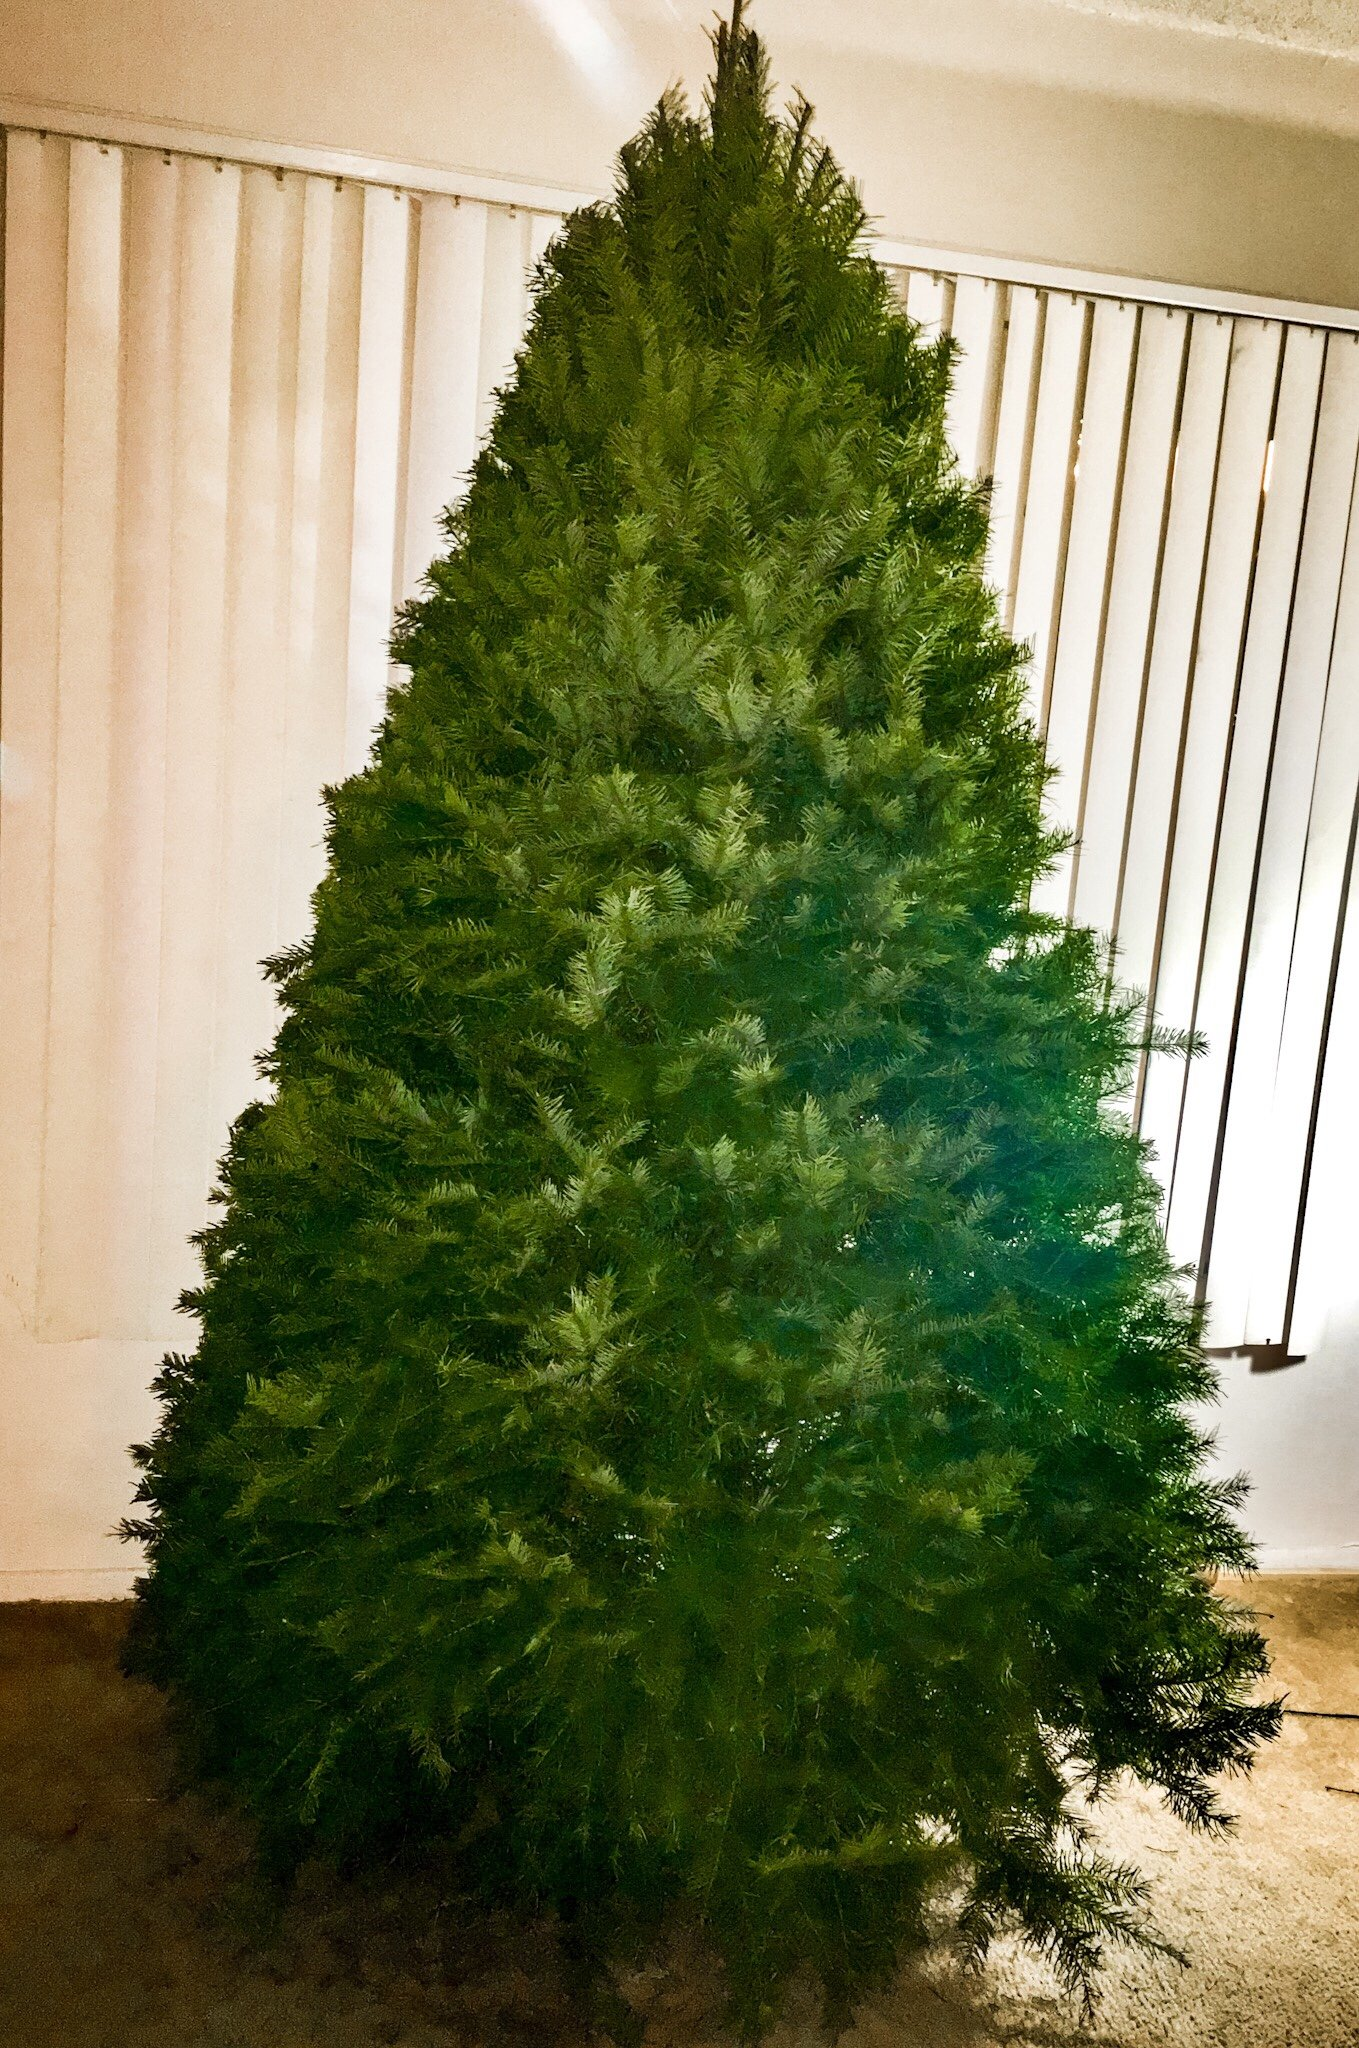 Does Costco Sell Christmas Trees? They Do, and They Are Epic!